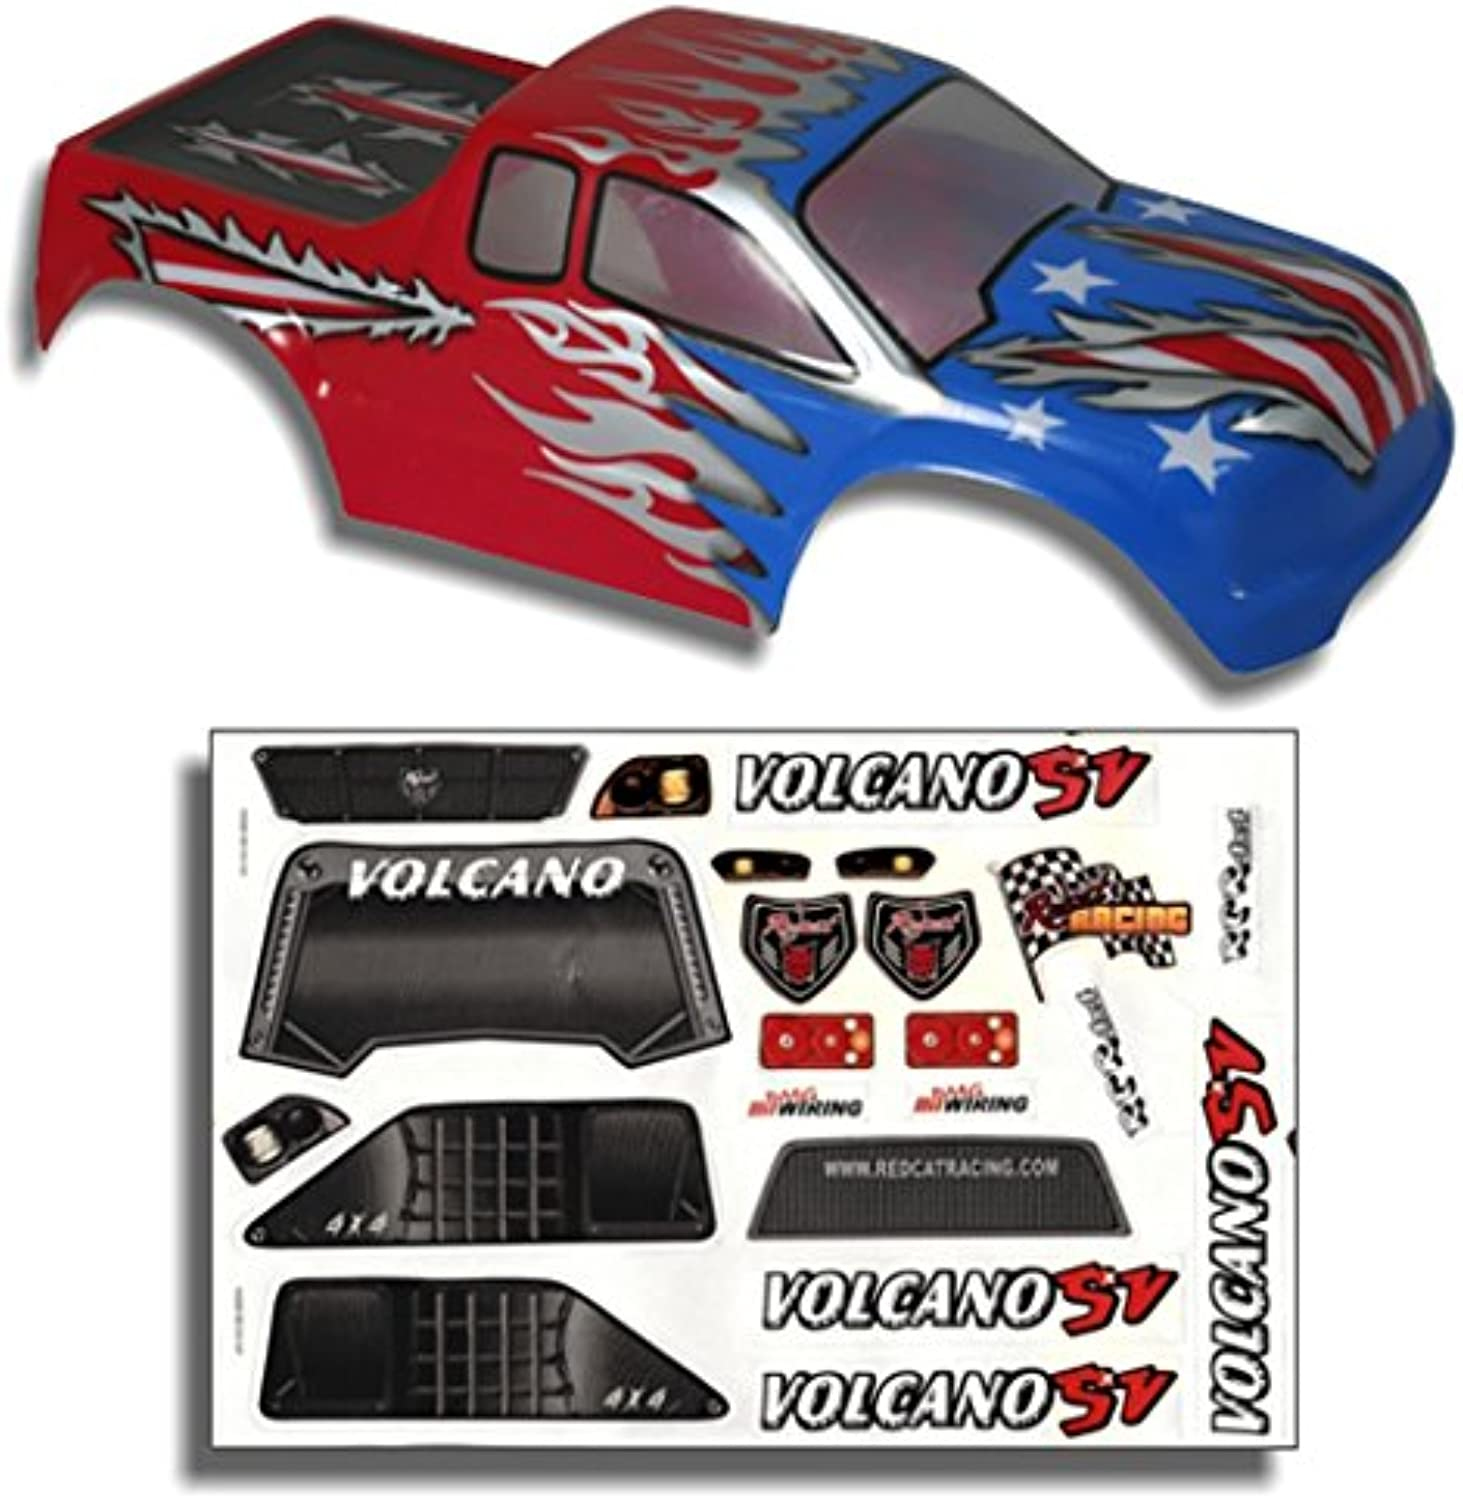 Redcat Racing Truck Body Red, White, and bluee (1 10 Scale)